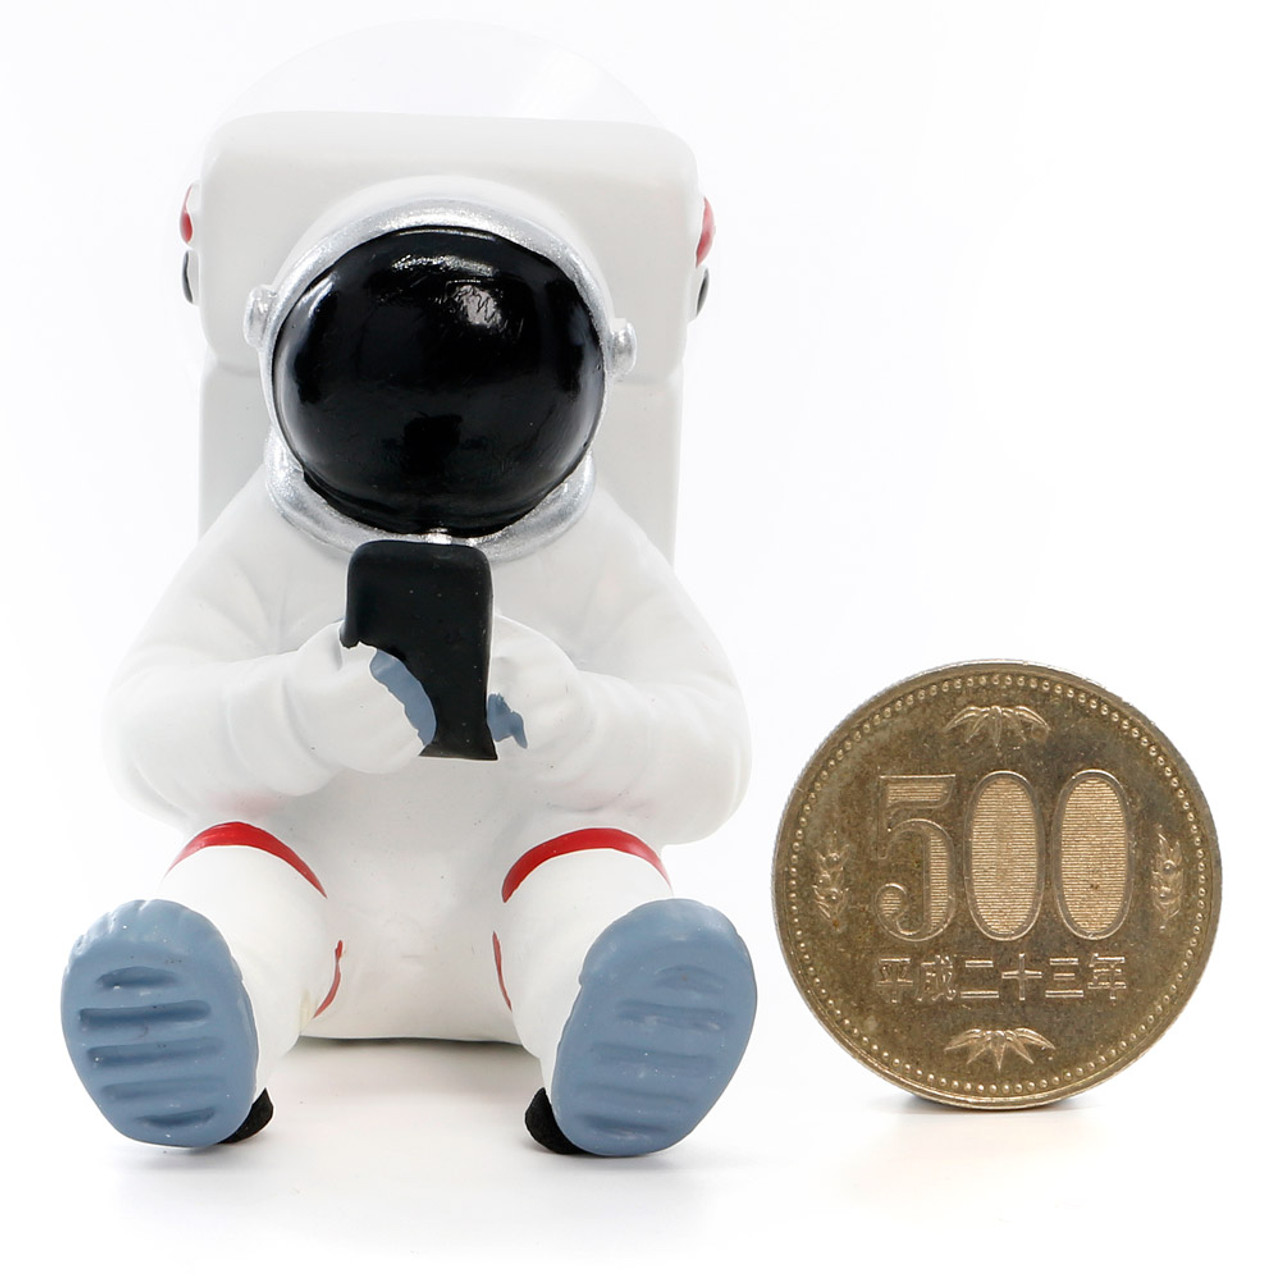 Seto Craft Motif Hand Painting Cellphone / Mobile Device Stand - Astronaut or Spaceman ( Proportion )